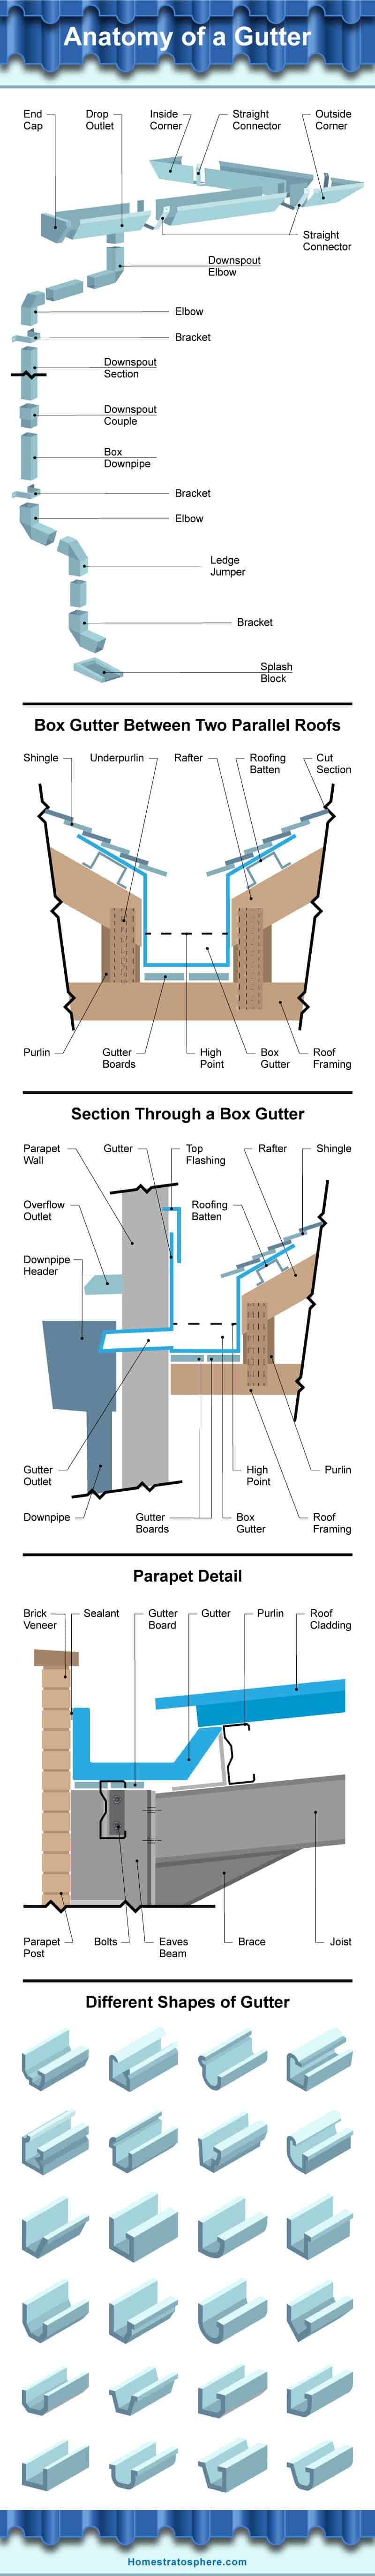 Extensive graphic showcasing all the parts and views of a roof gutter